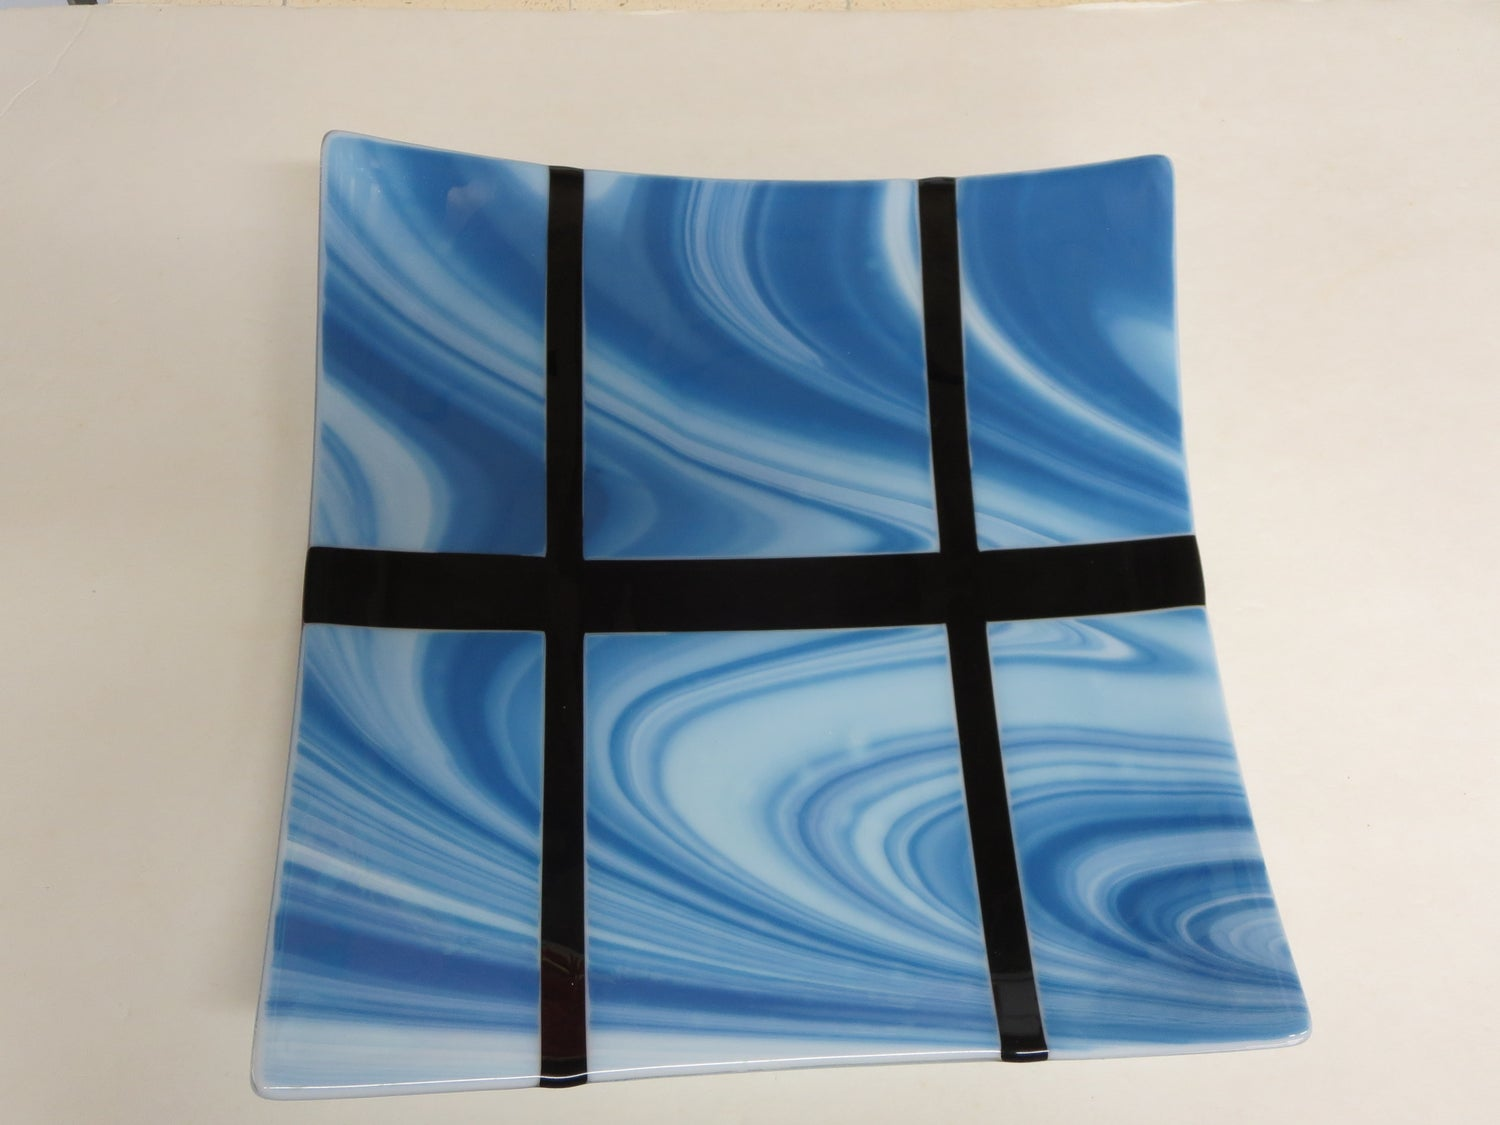 A Blue Plate with Black Accents - FG-077